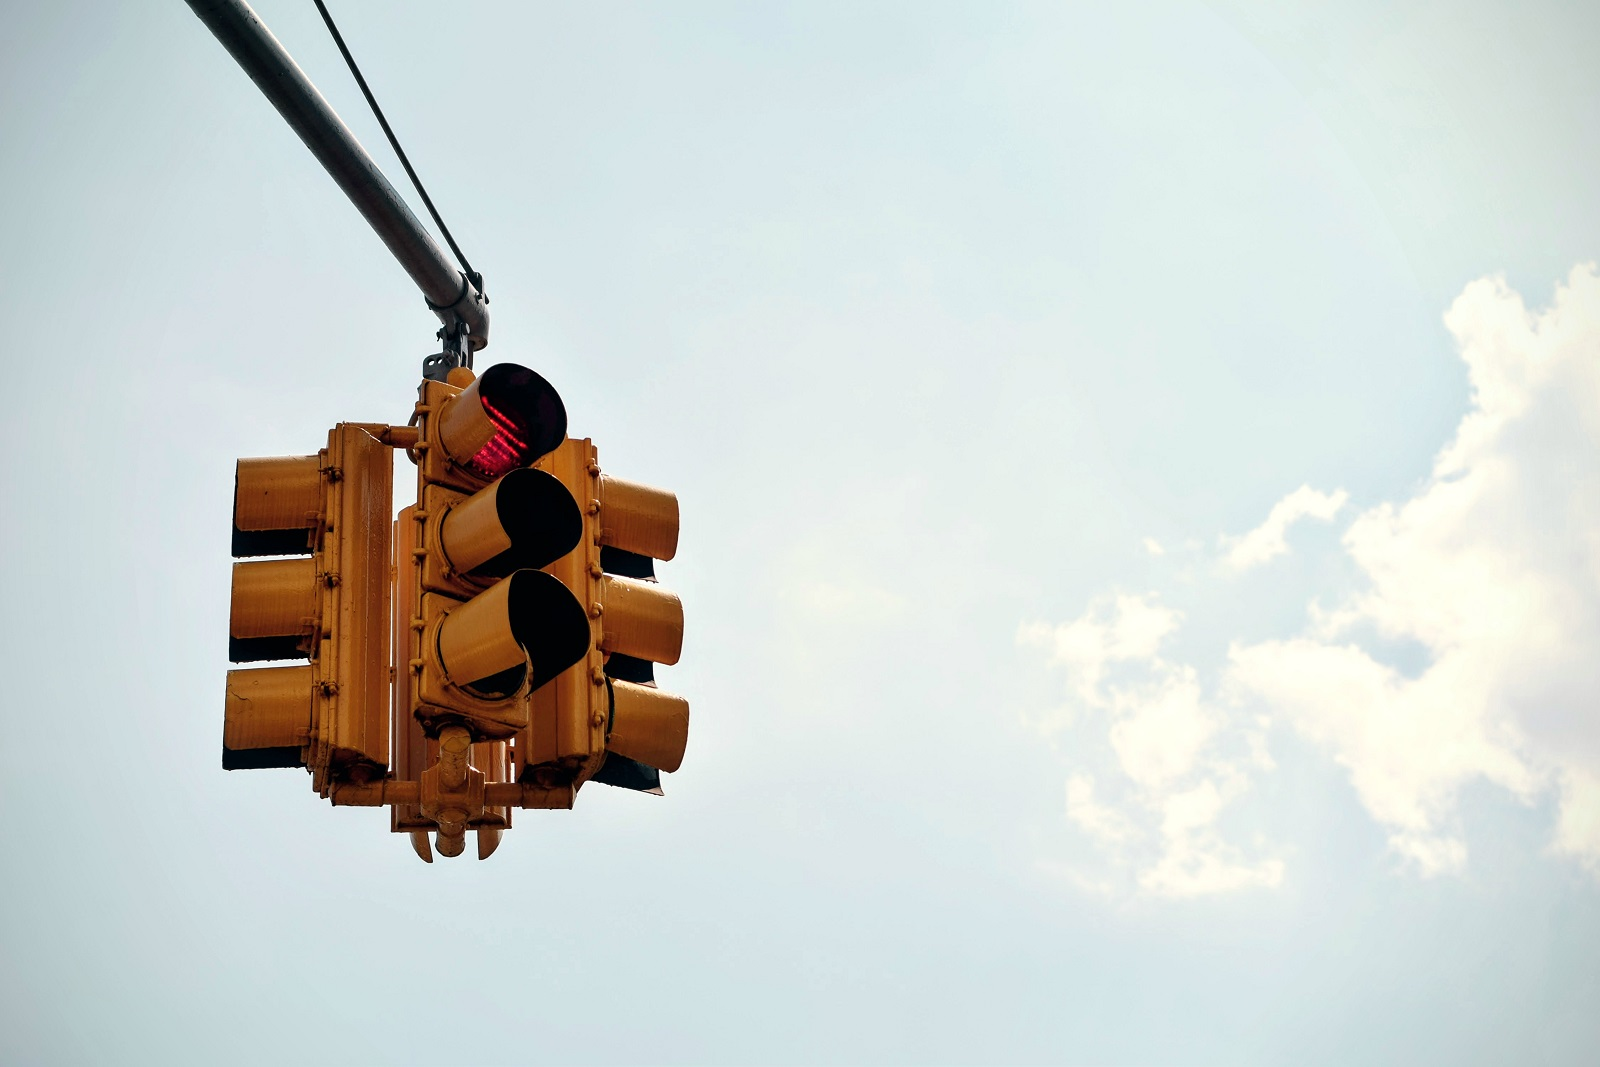 a photo of a stop light on red